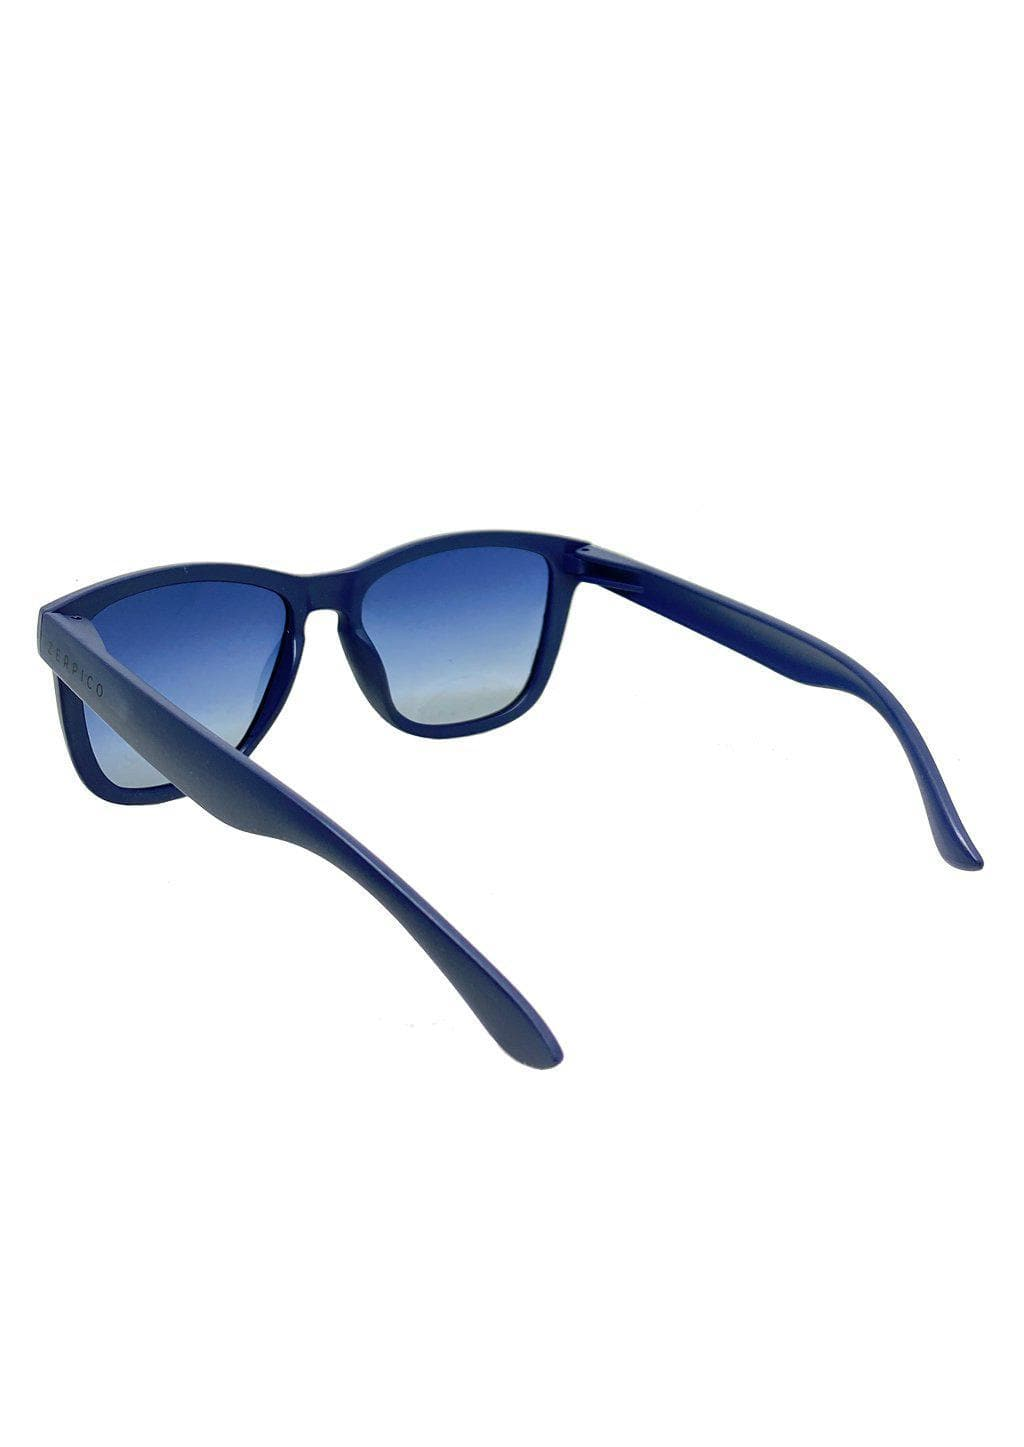 Our Mood V2 is an improved version of our last wayfarers. Plastic body for great quality and durabilty. This is Navy with a matte blue frame and gradient blue lenses. Studio shoot from the back.